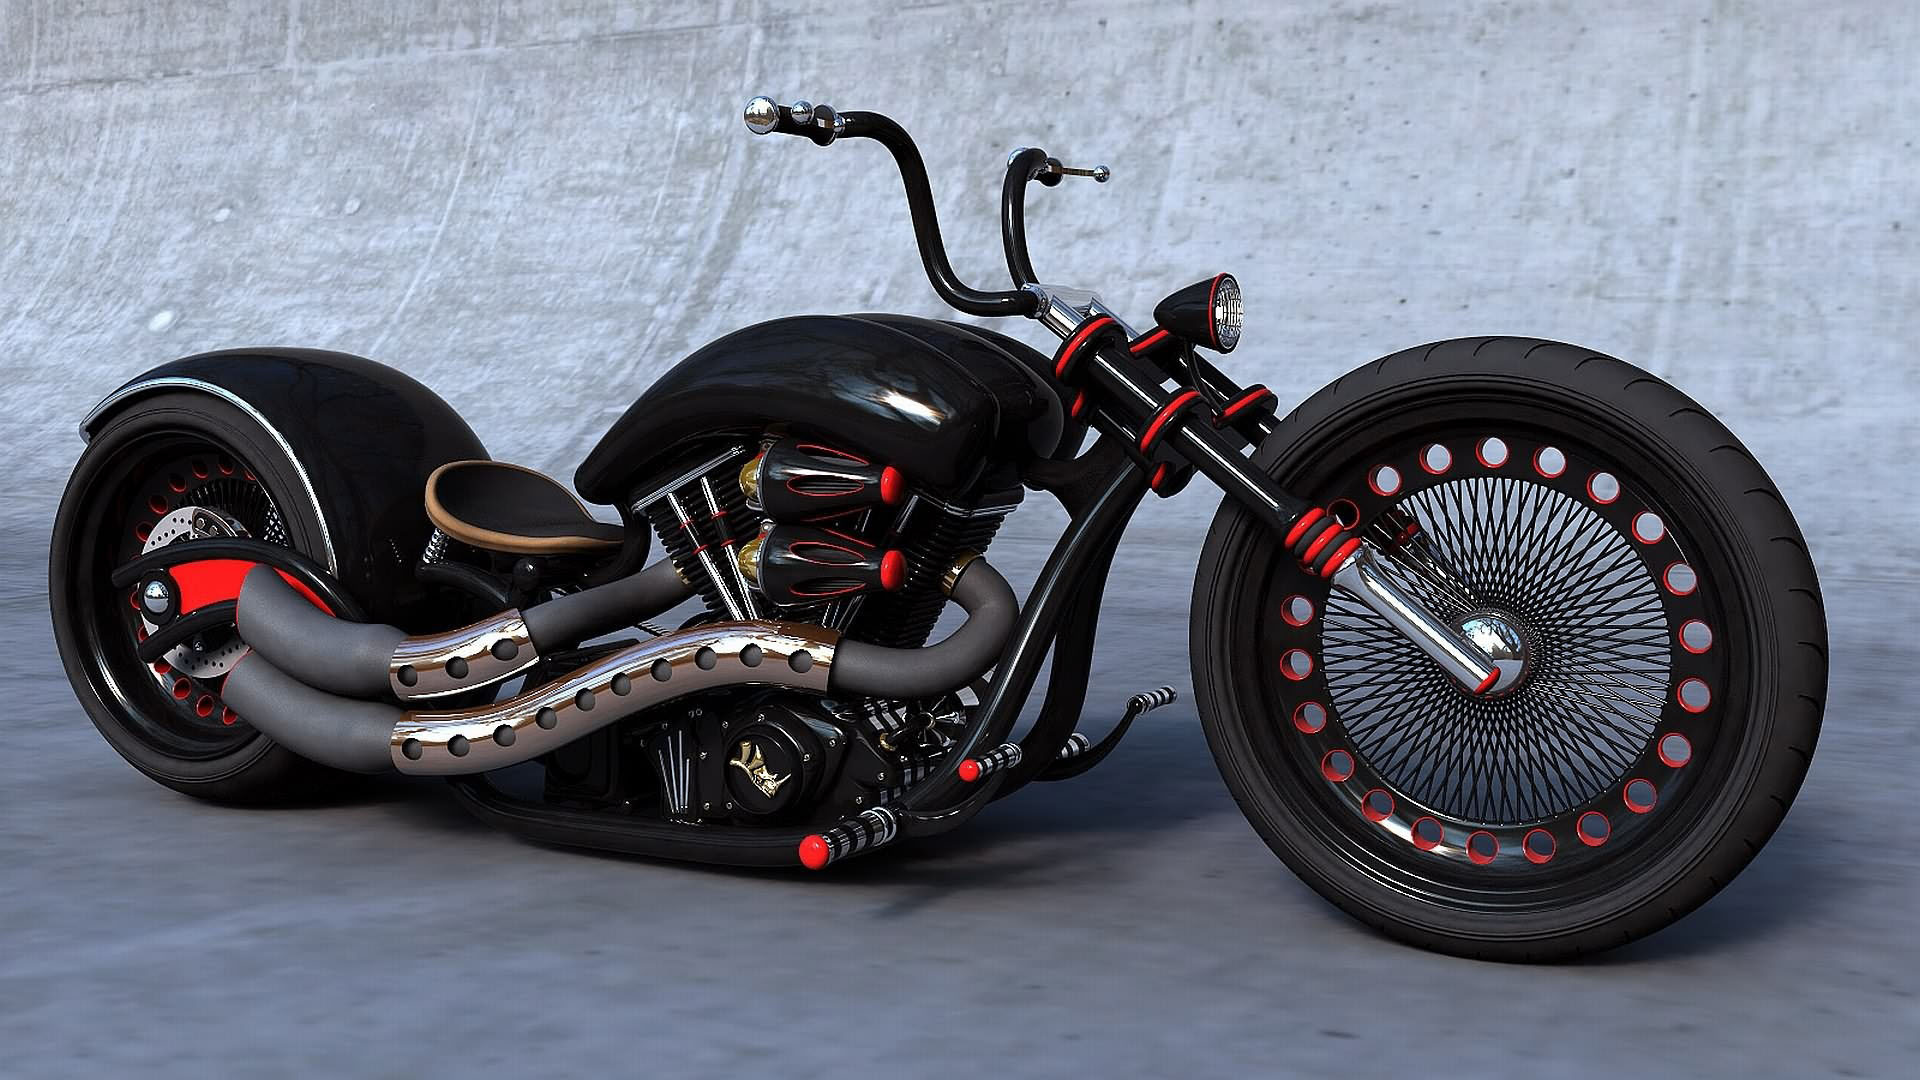 48 Motorcycles Pictures Wallpapers On Wallpapersafari